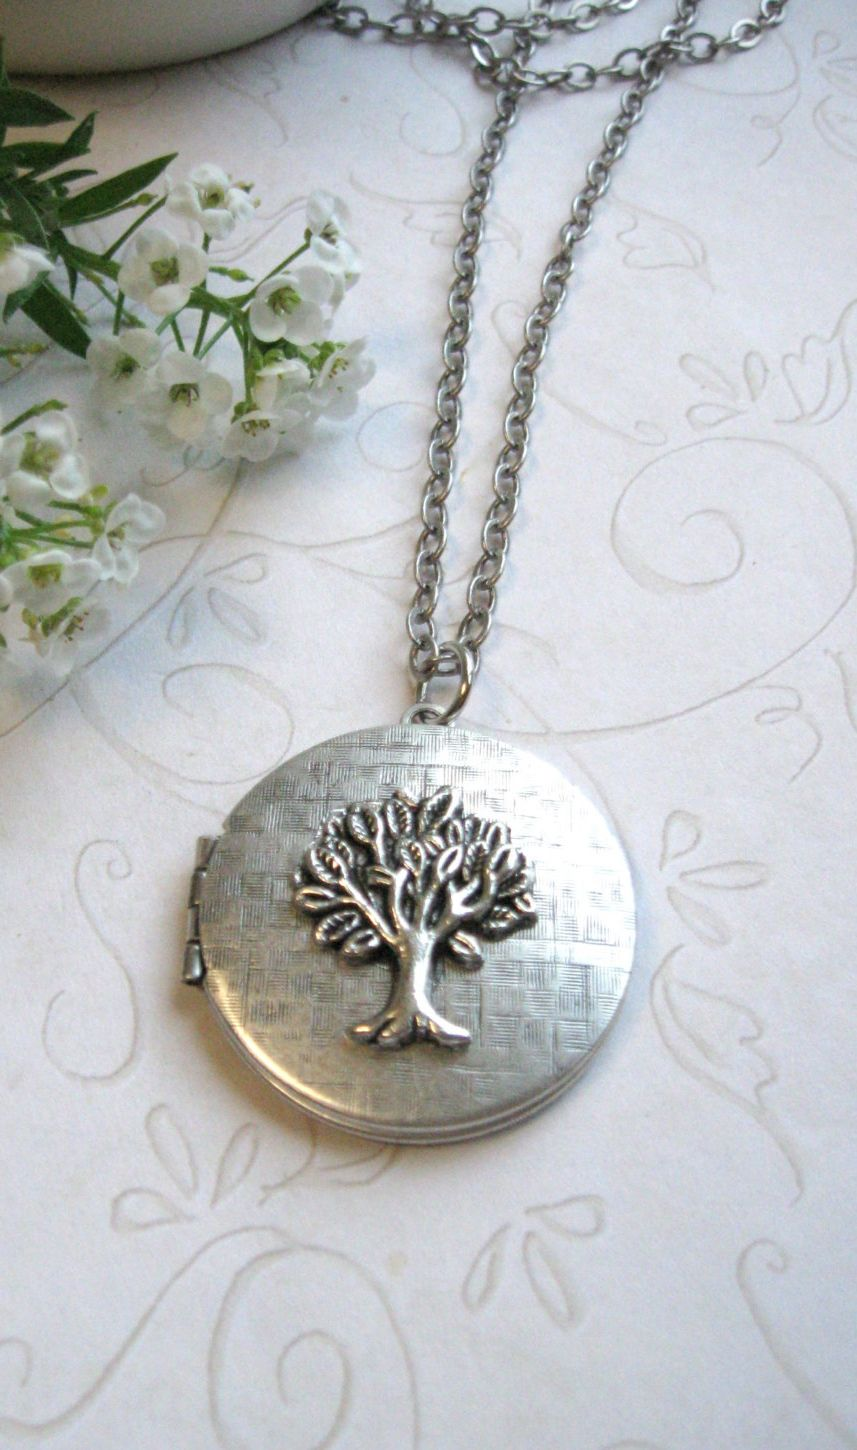 aromaluxe surgical necklace tree products pads london prodyct charms essential insert washable title jewelry steel grade oil hypoallergenic life aromatherapy aromalove lockets diffuser image of chain gold stainless oils